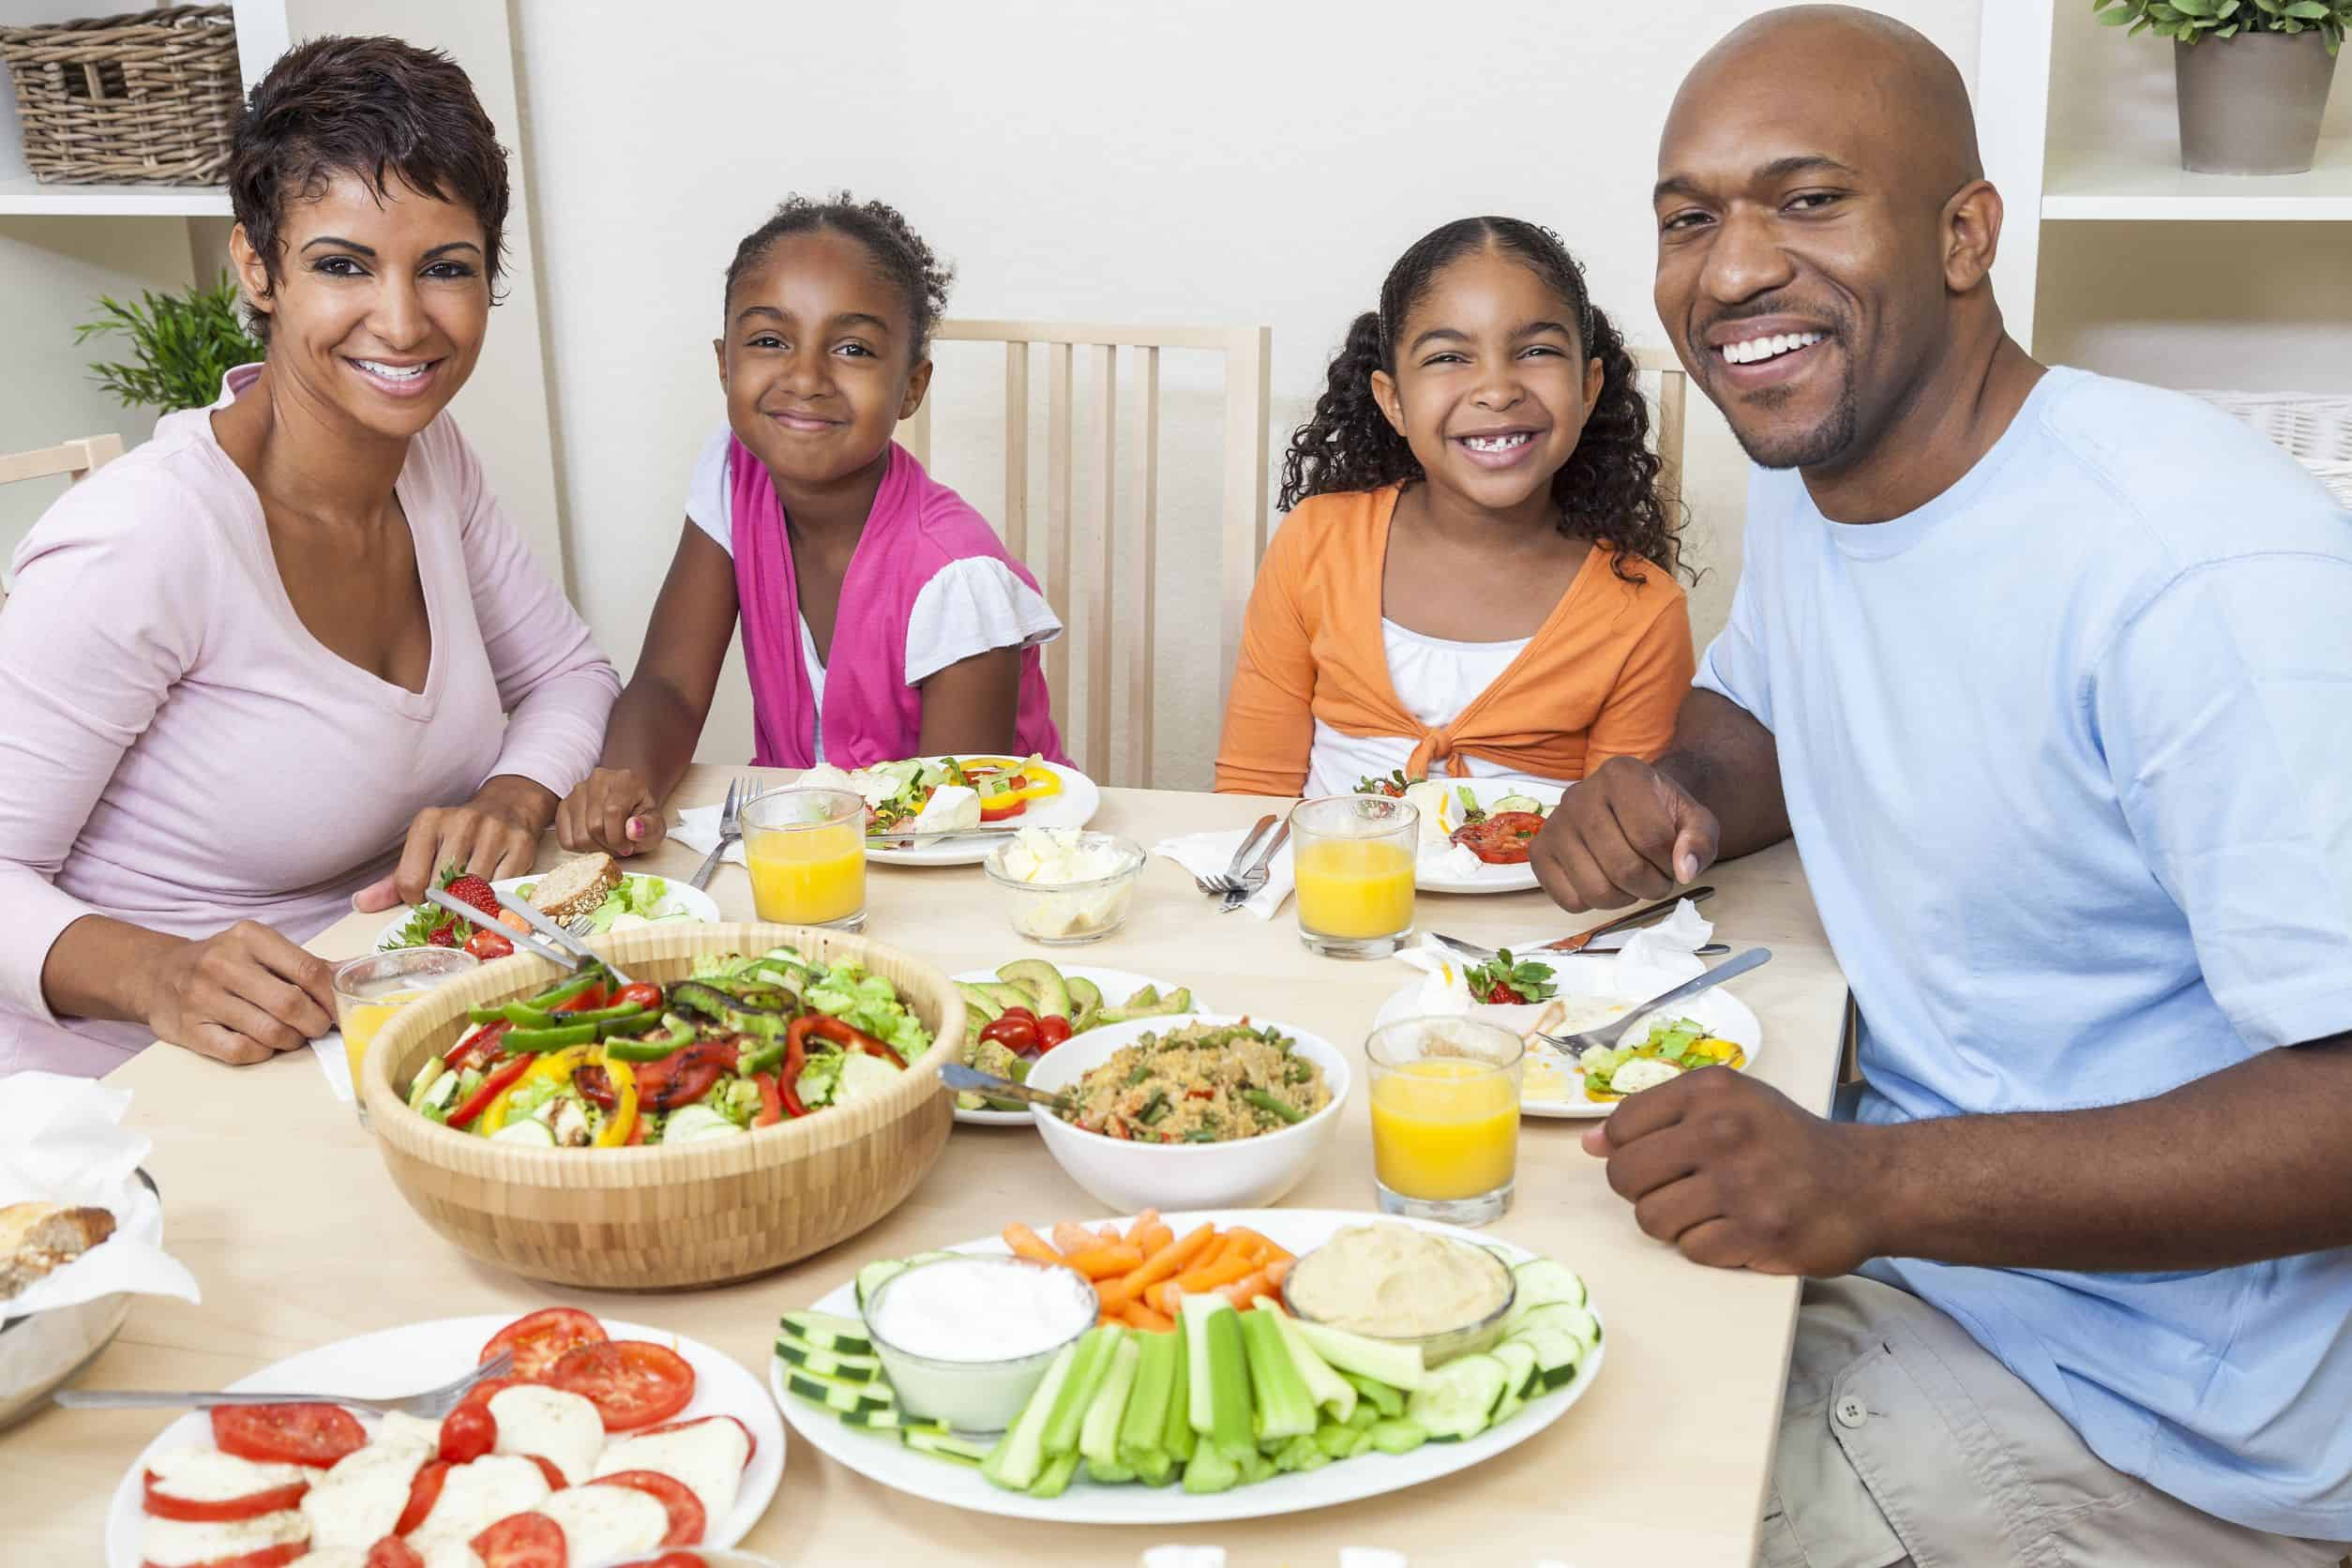 5 Healthy Budget Friendly Meals